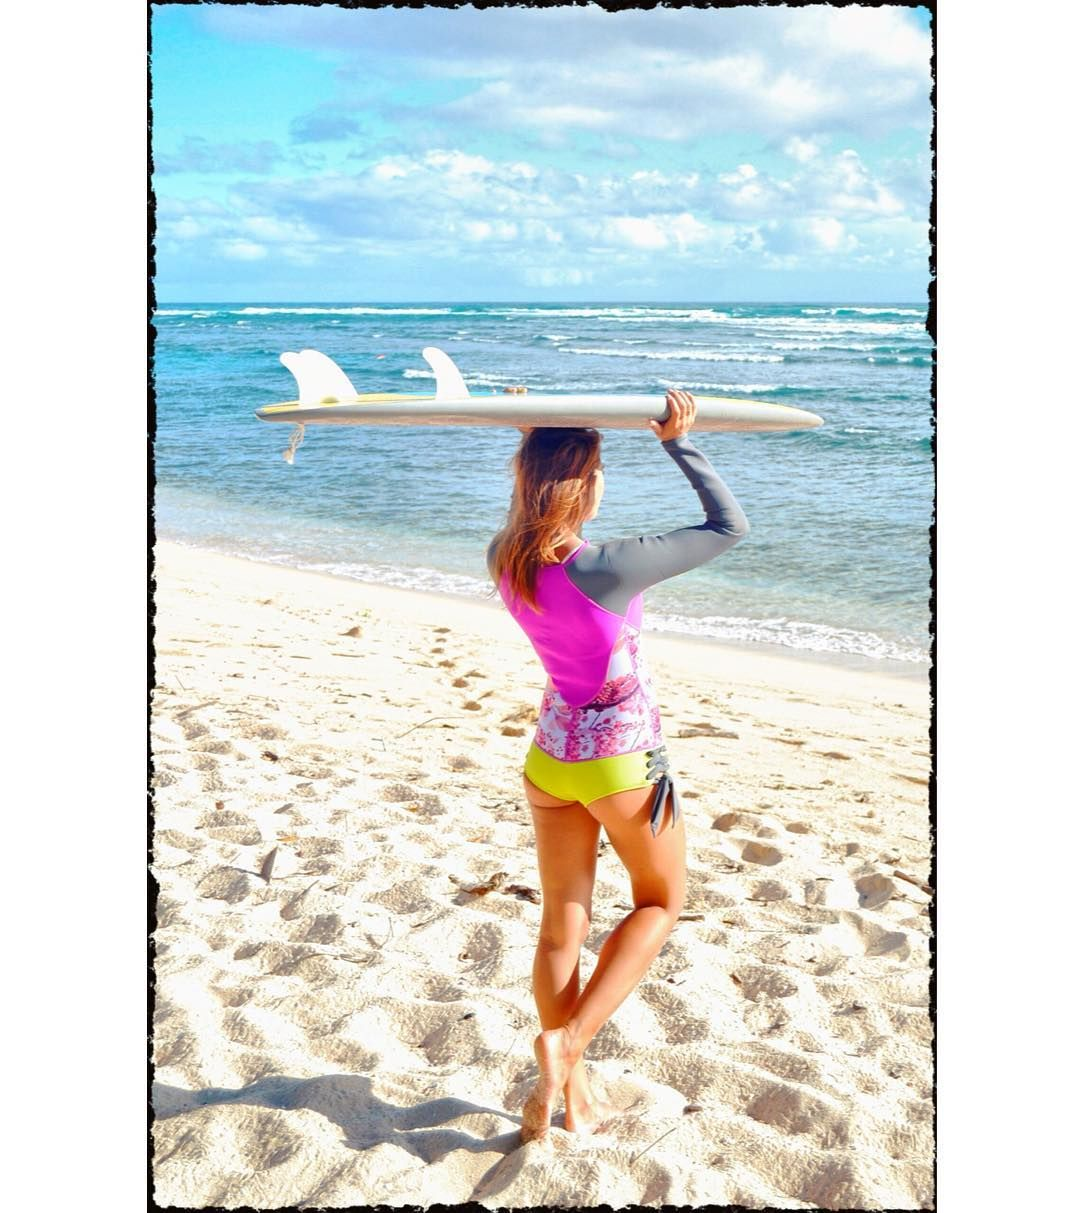 Our new Blossom suit stunning on @rdzugan  || #sirensong #brightandbeautiful #surfstyle